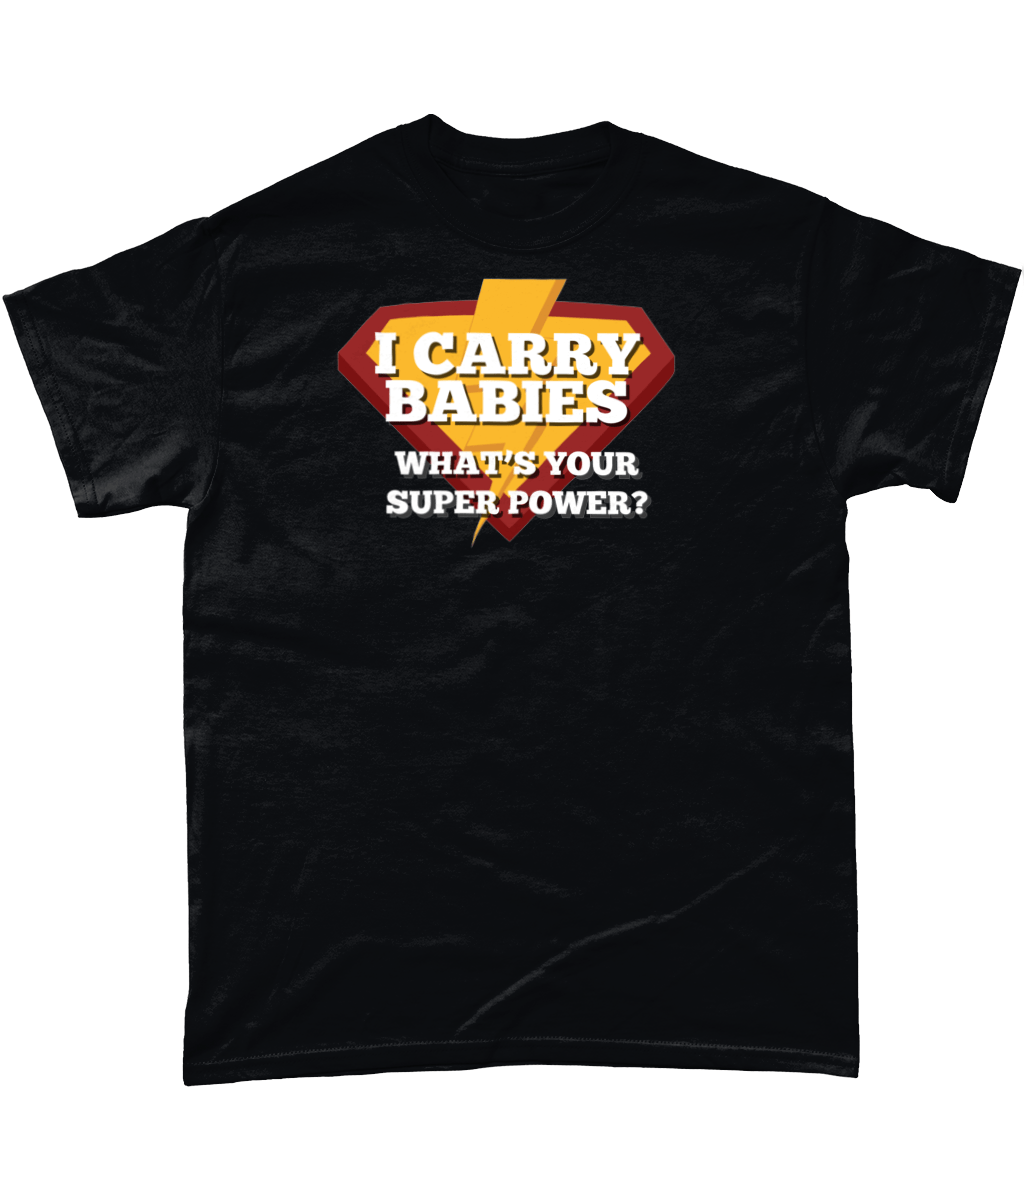 I Carry Babies – What's Your Superpower? – T-shirt